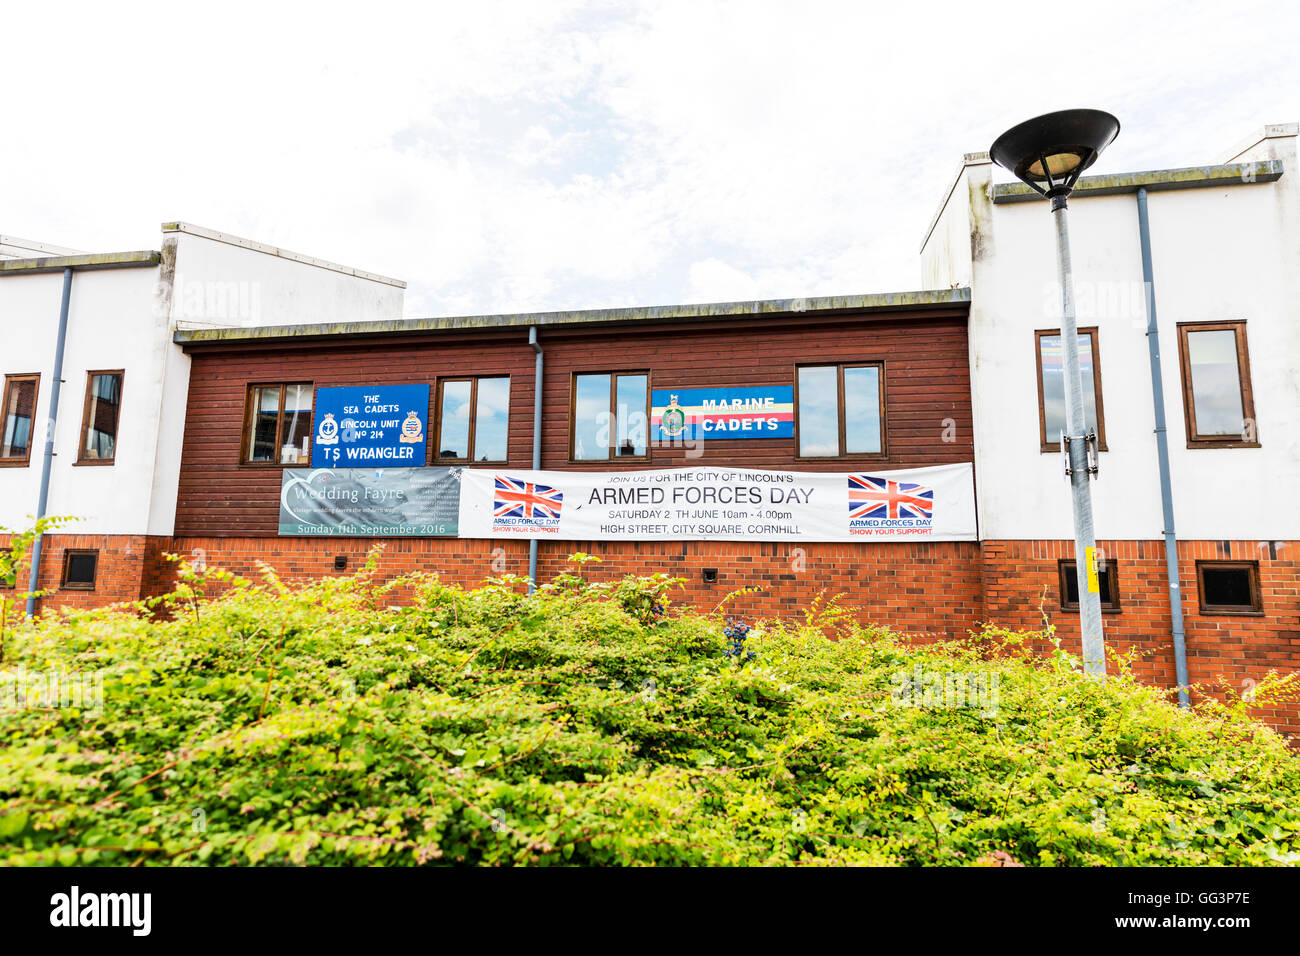 Armed forces day sign marine cadets building exterior Lincoln City Lincolnshire UK England Cities - Stock Image